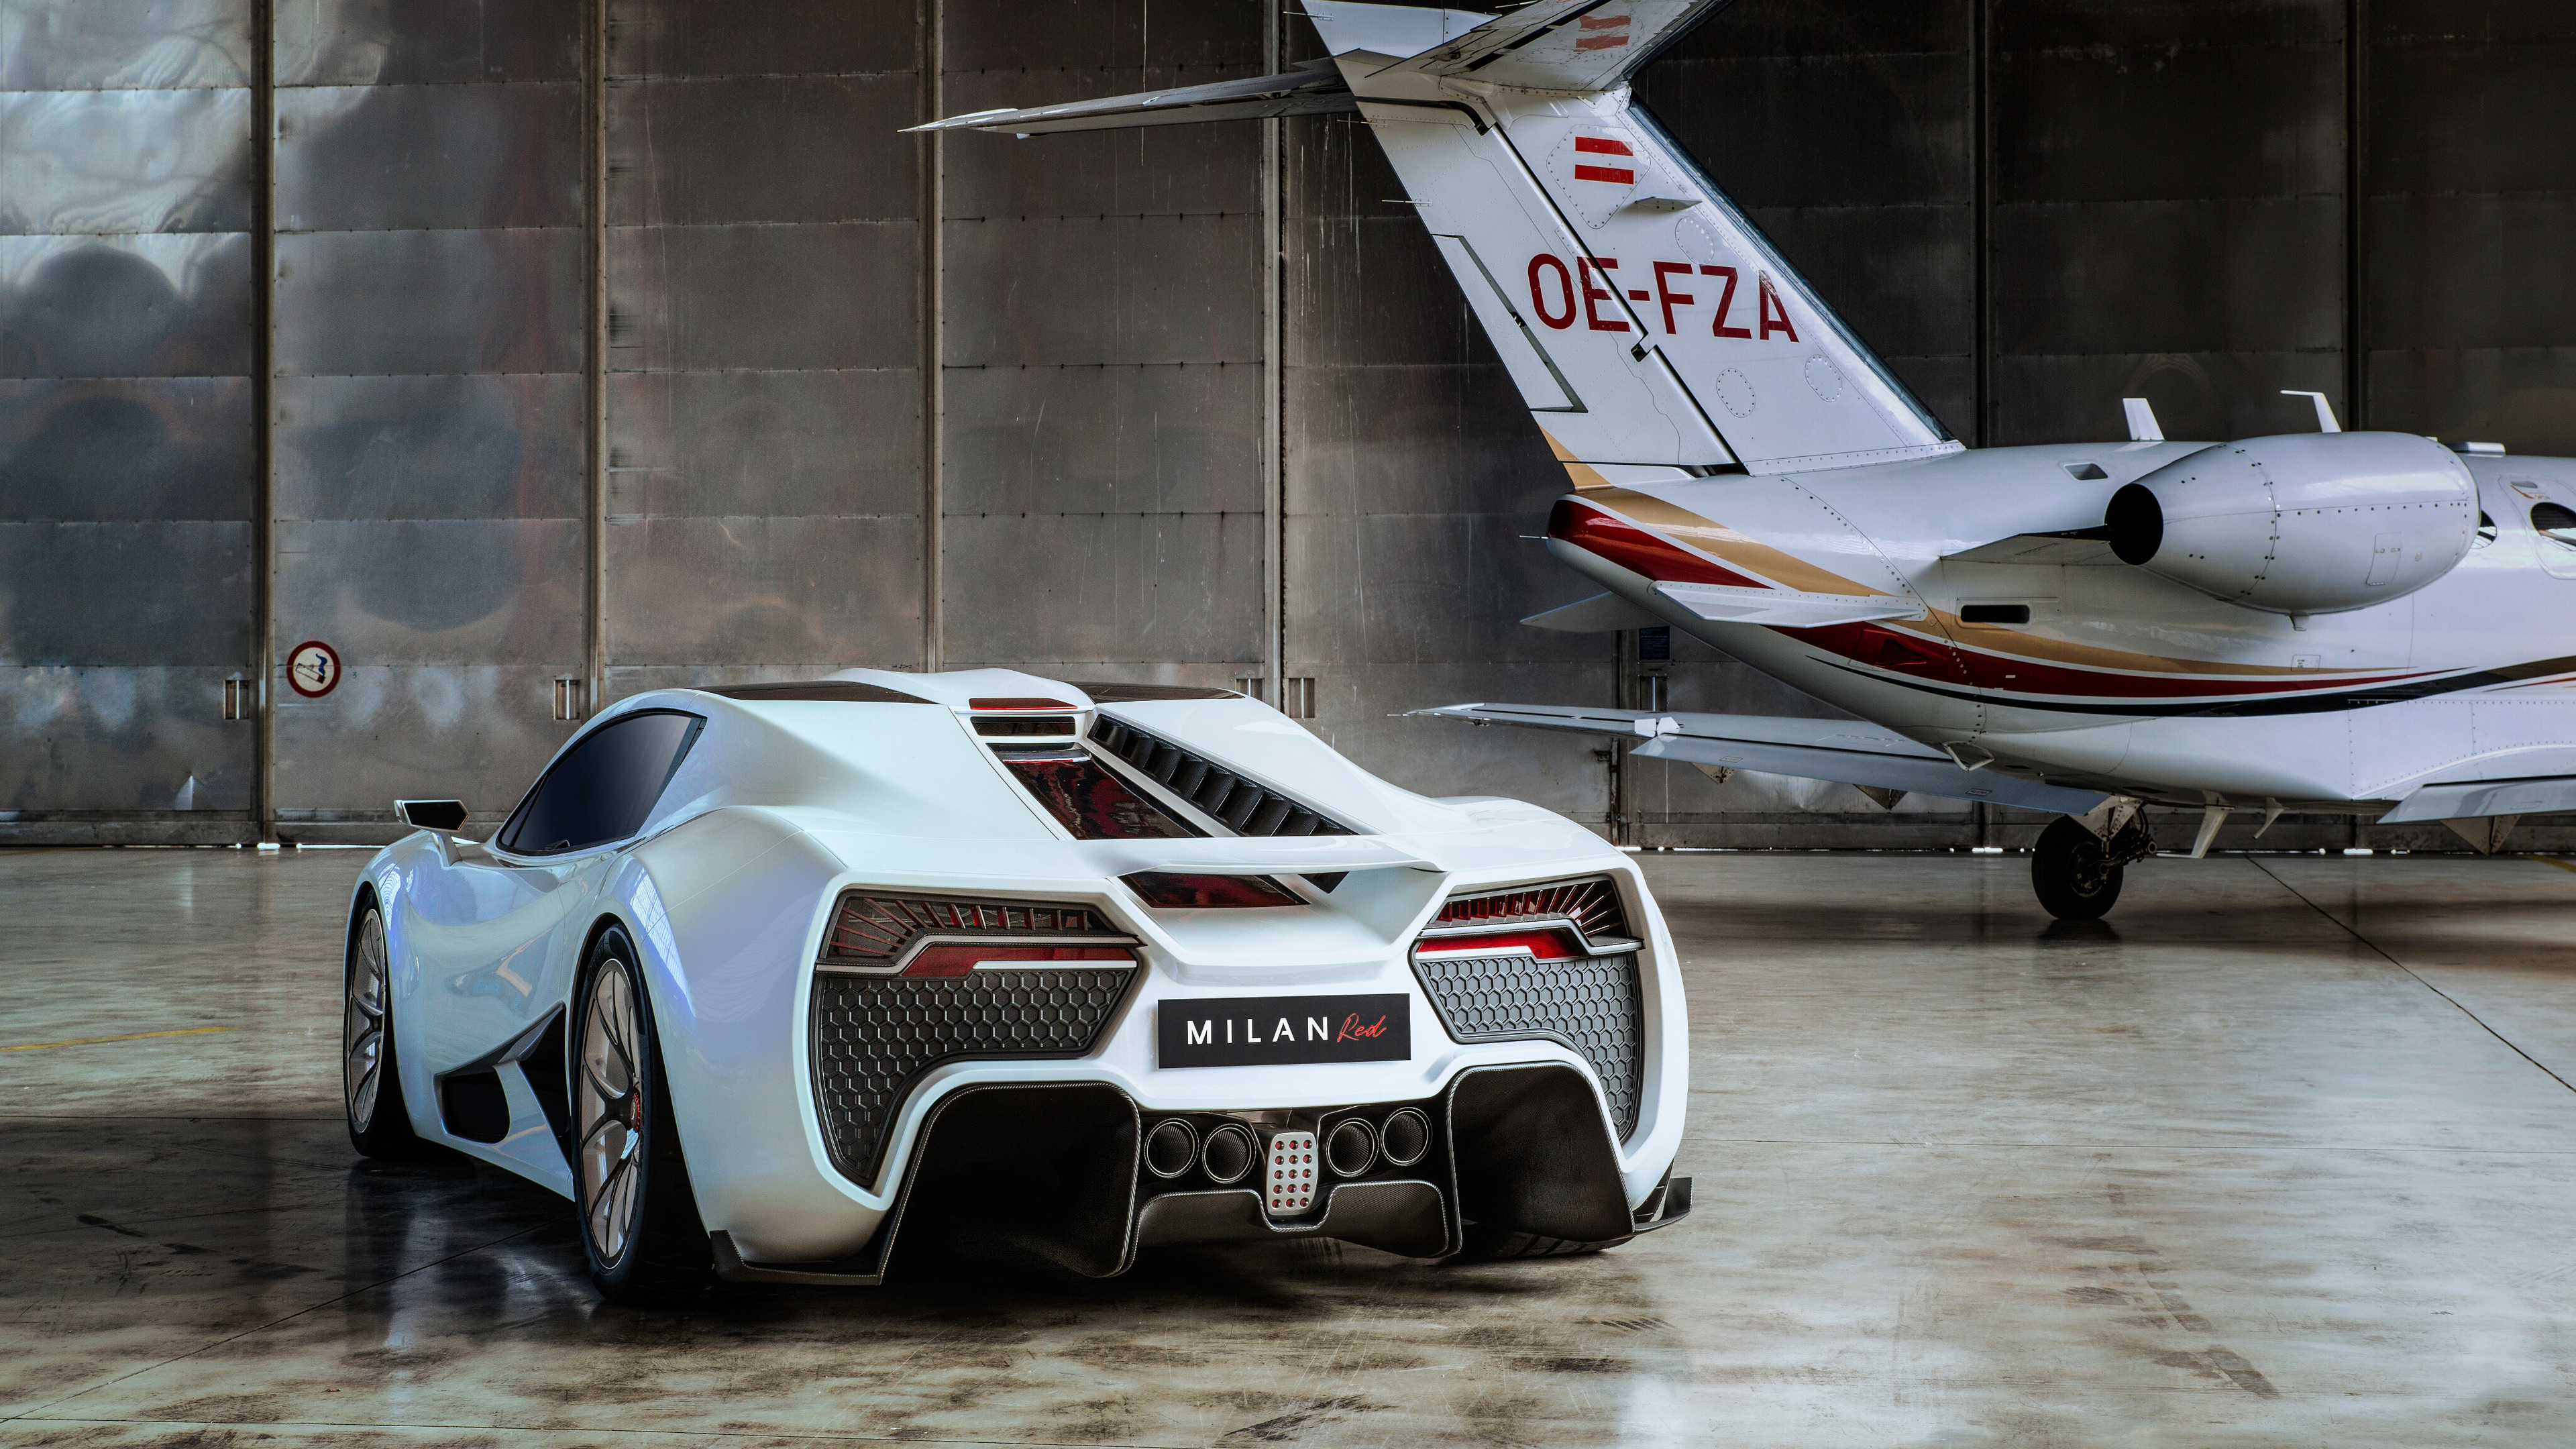 milan red 2018 rear airplane view 1539113565 - Milan Red 2018 Rear Airplane View - milan red wallpapers, hd-wallpapers, cars wallpapers, 4k-wallpapers, 2018 cars wallpapers